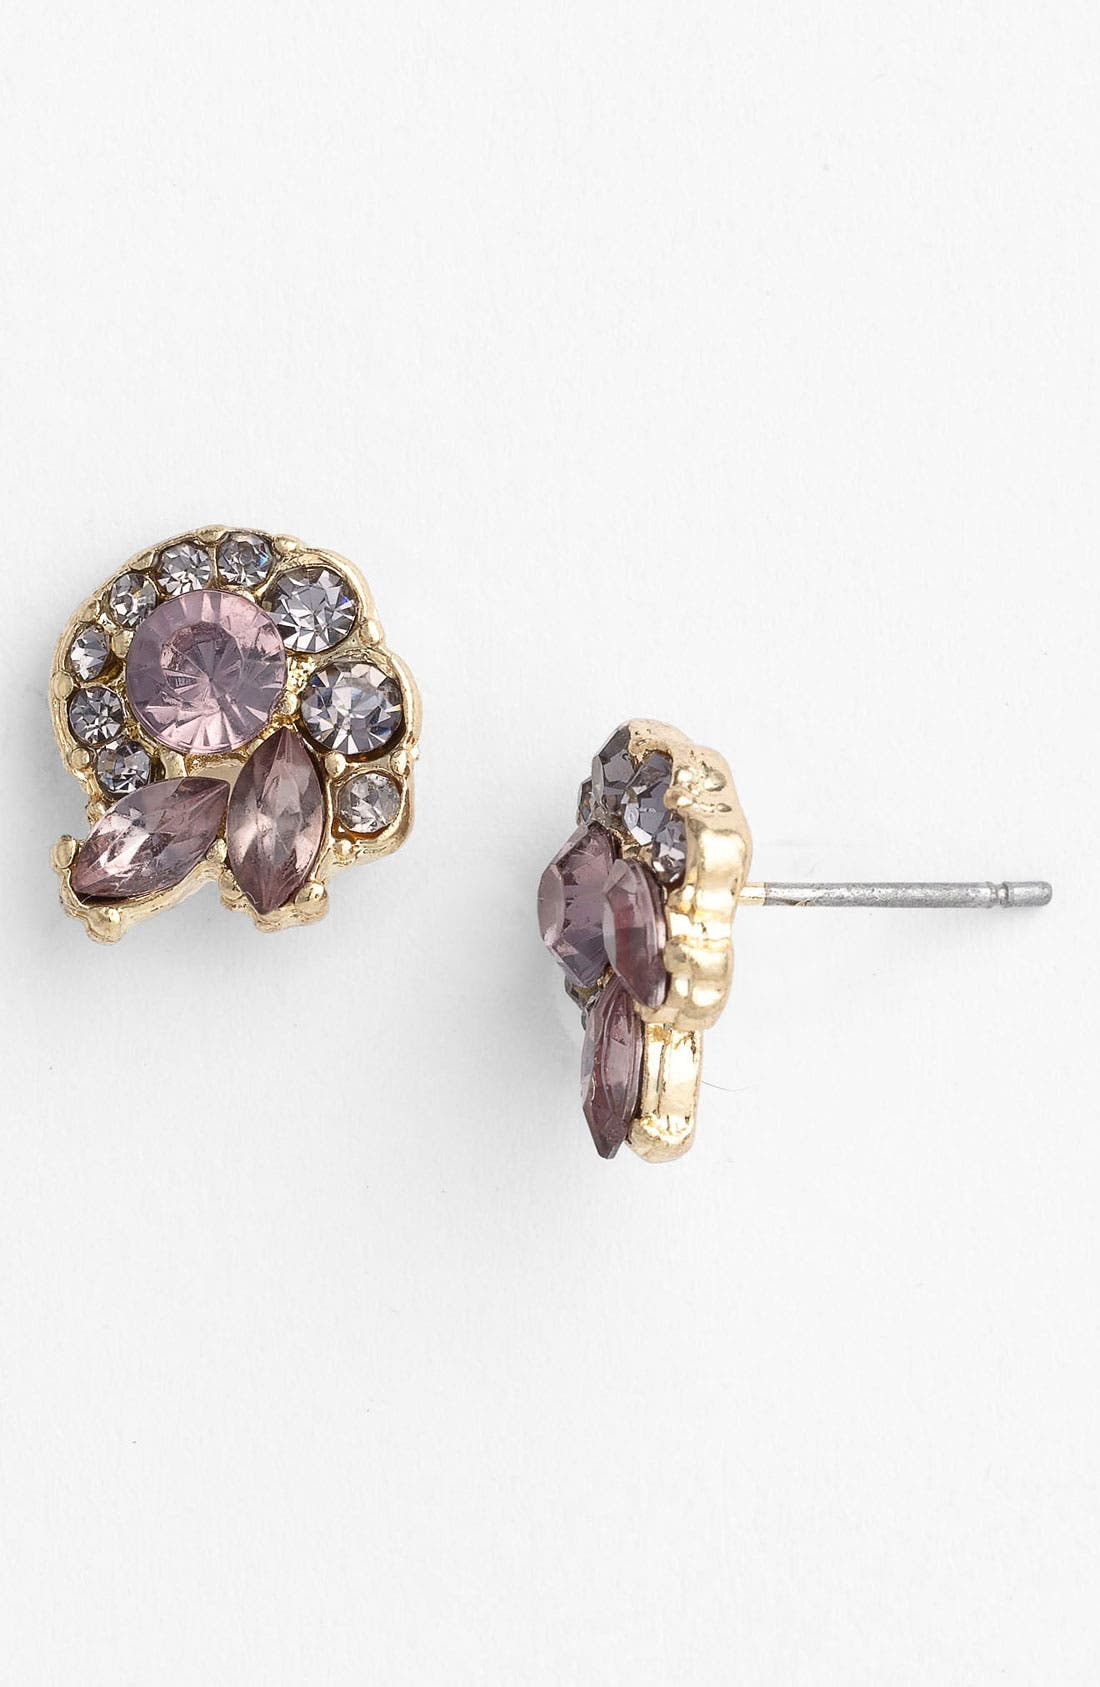 Alternate Image 1 Selected - Carole 'Nautilus' Rhinestone Stud Earrings